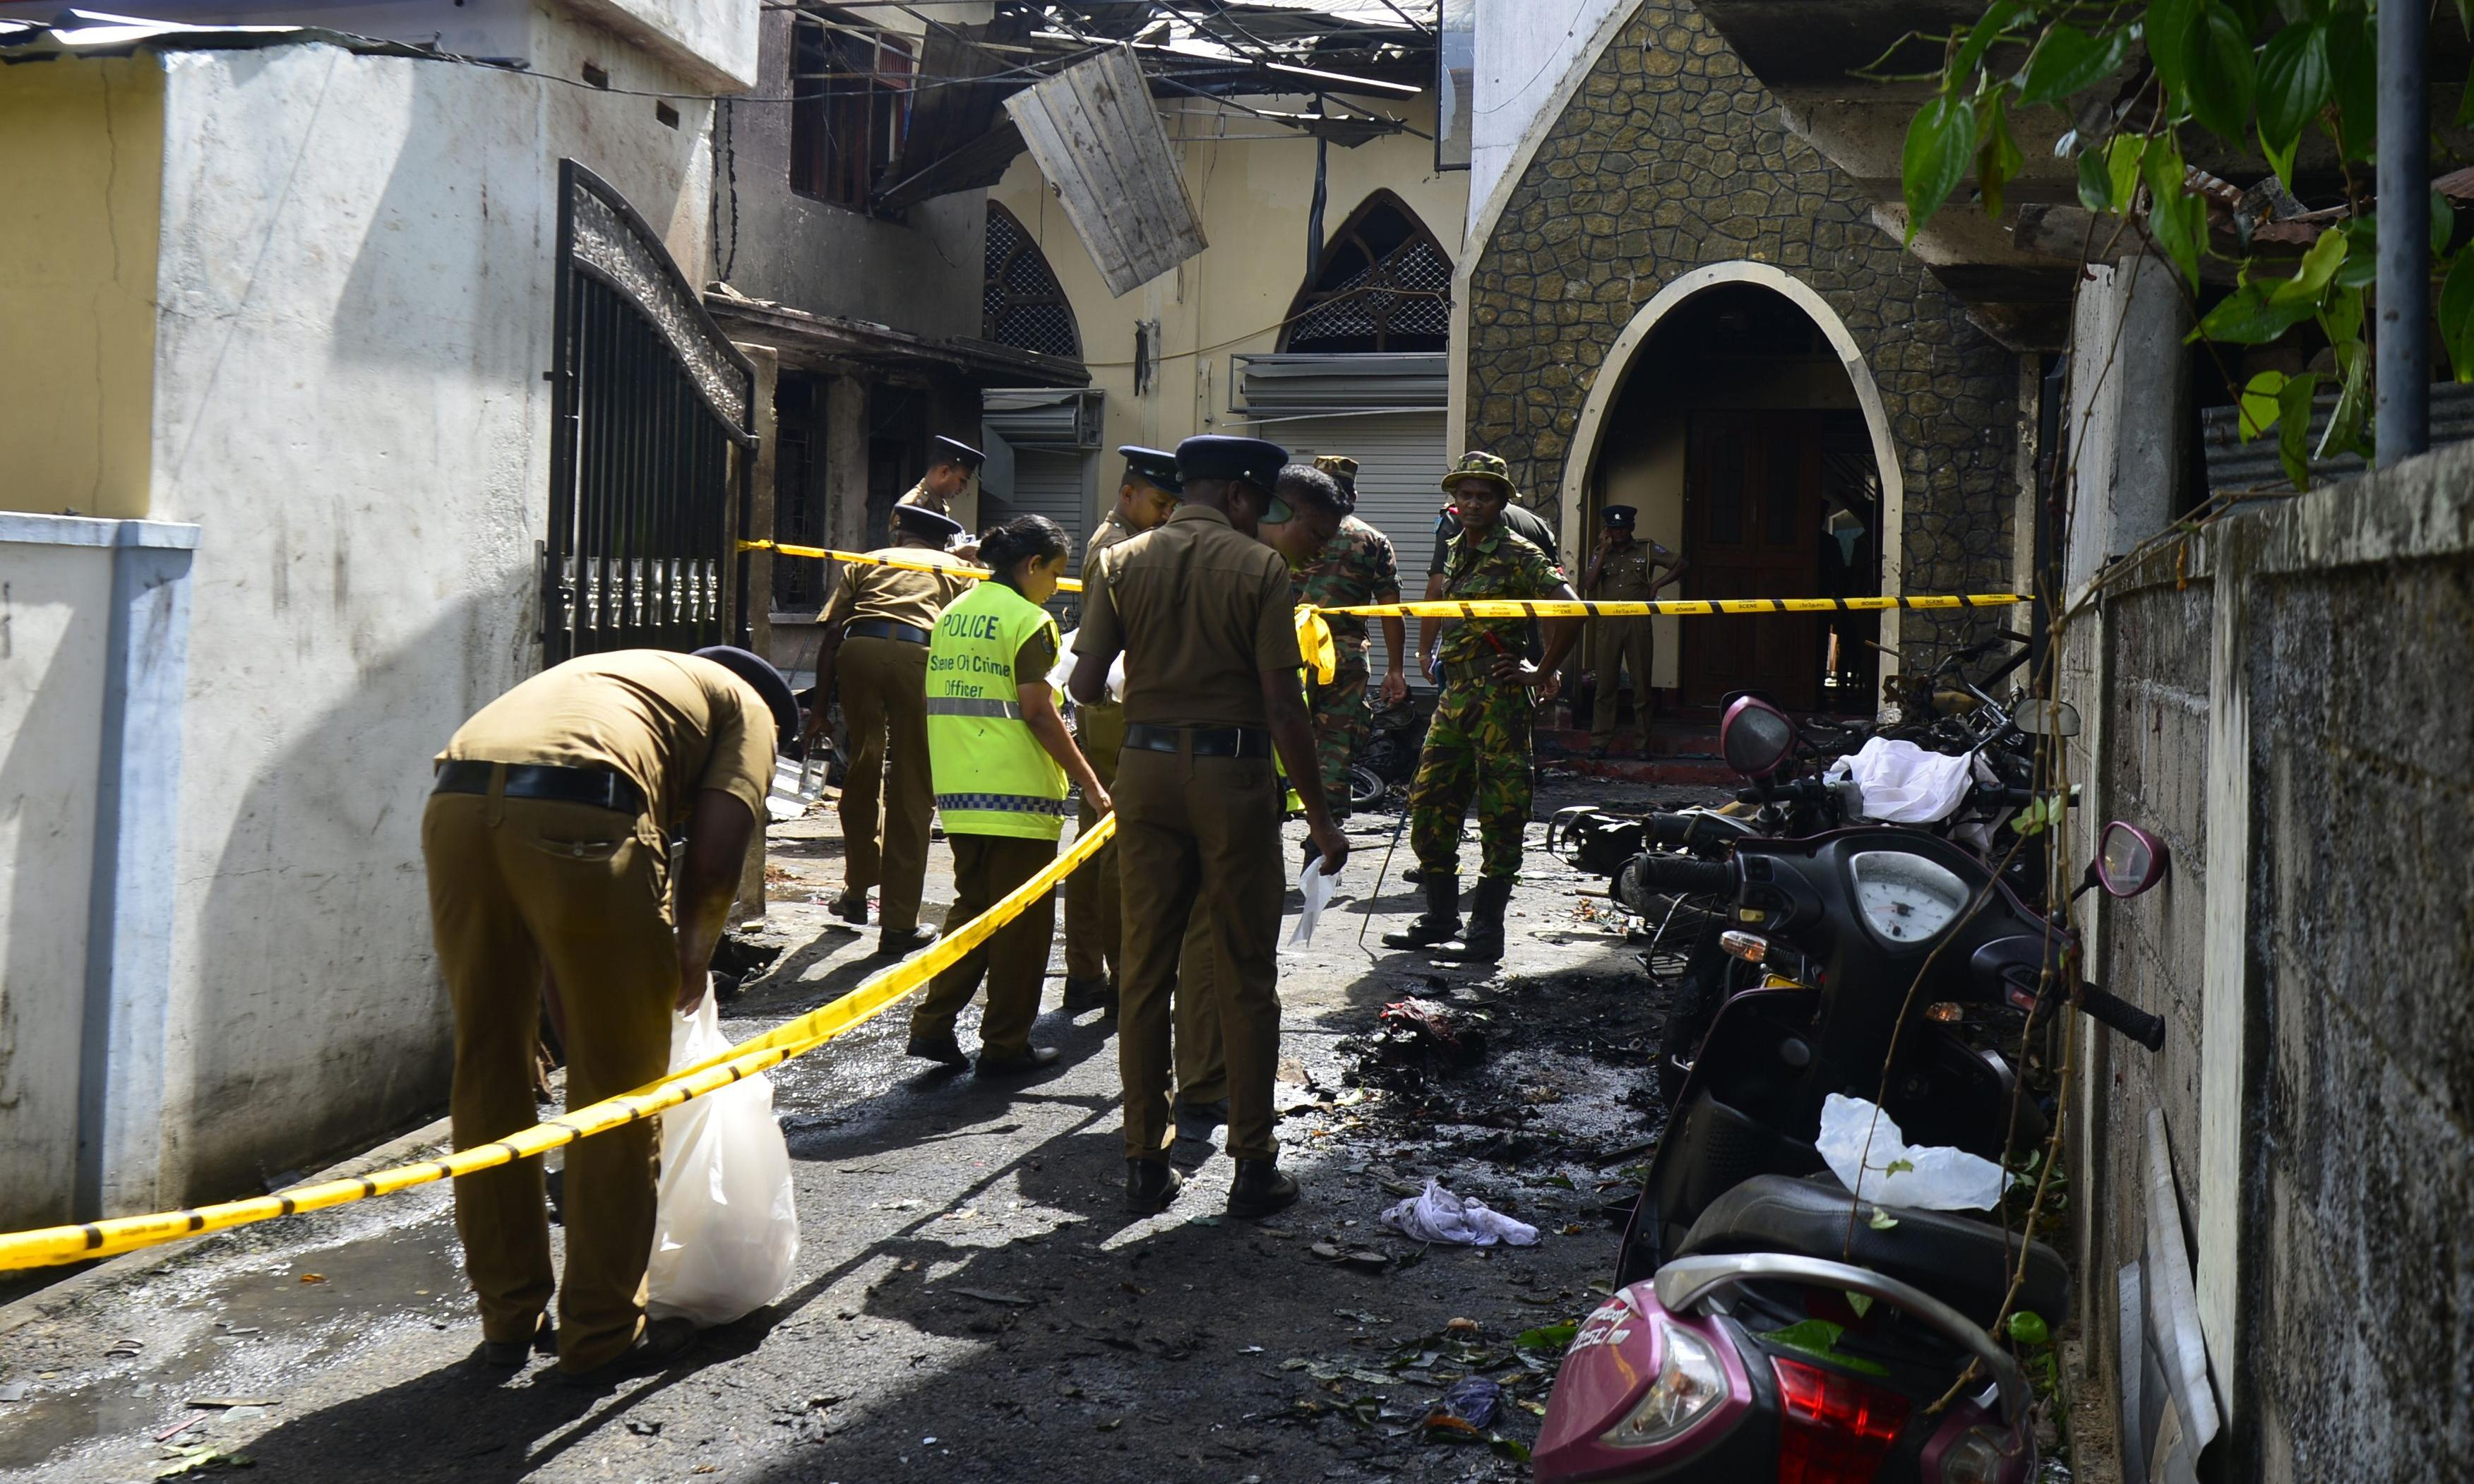 Sri Lanka: the worshipper who blocked bomber prevented further bloodshed